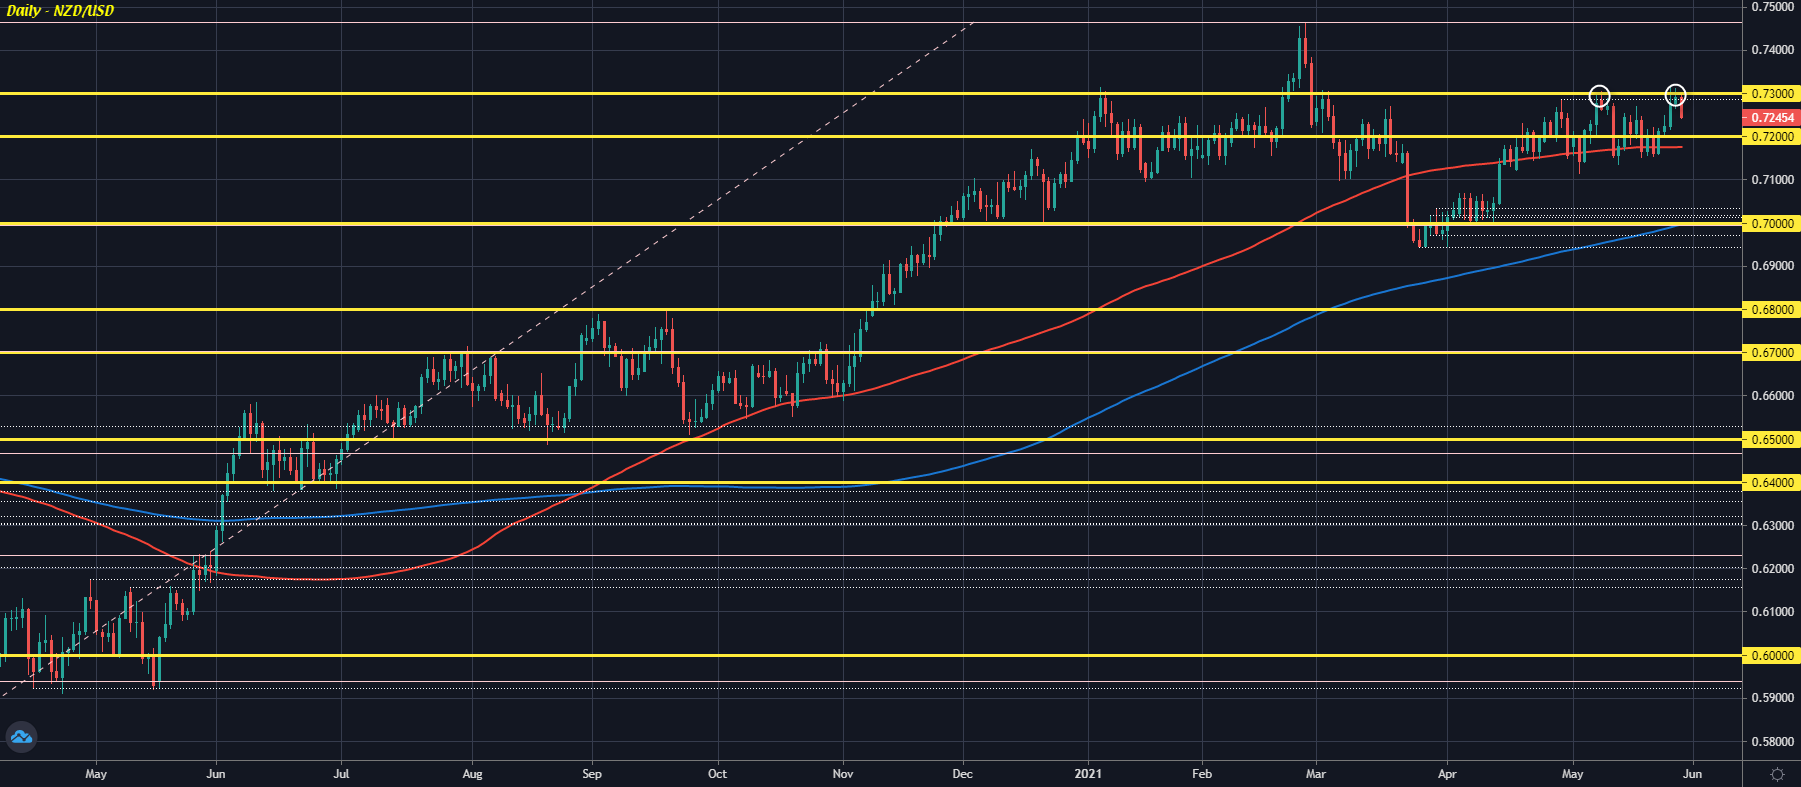 NZD/USD backs further away from 0.7300 as dollar firms to start the session